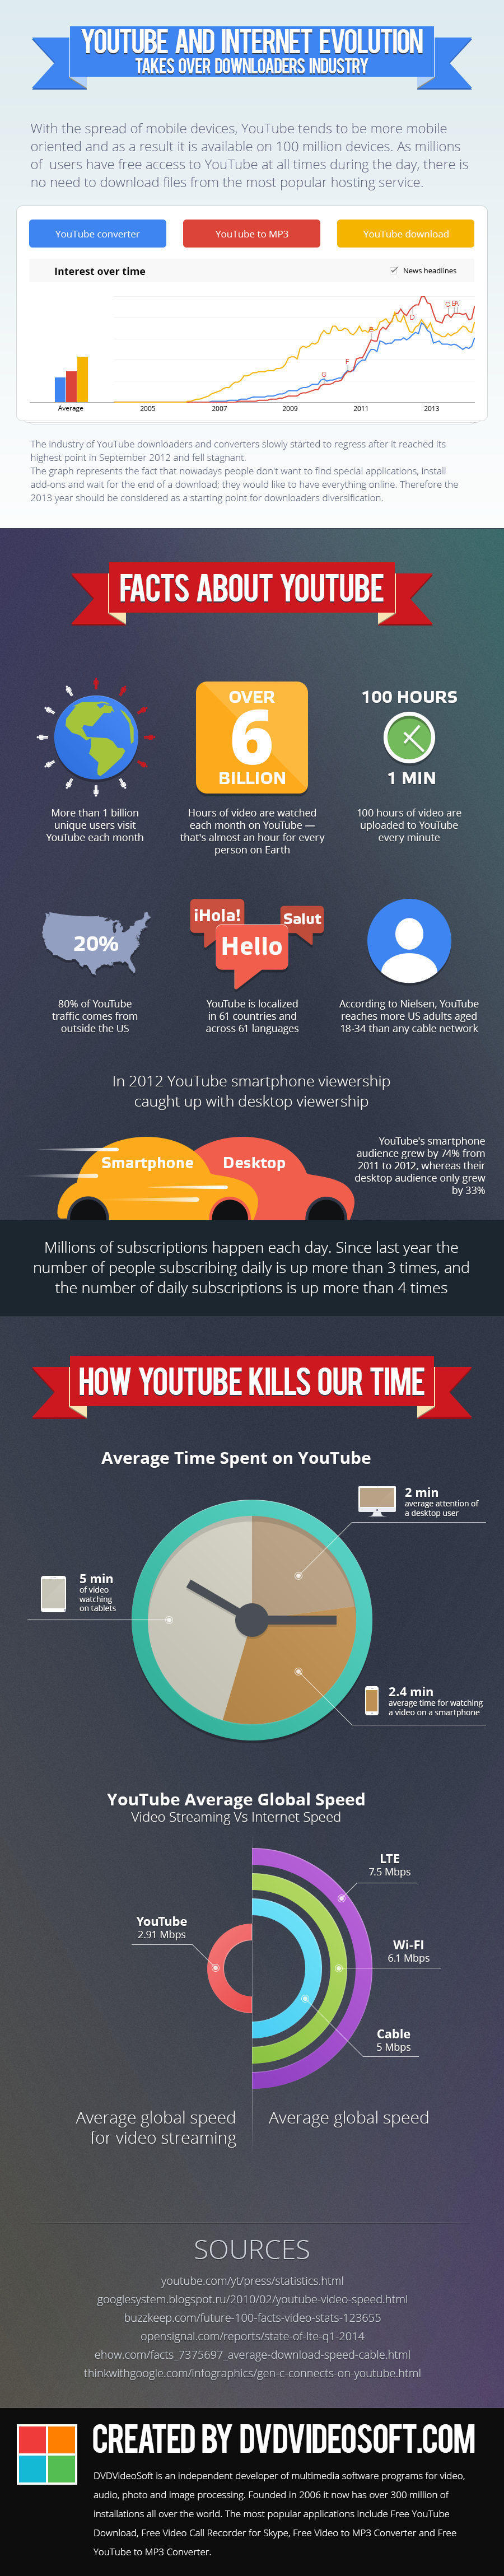 YouTube and Internet Evolution Takes Over Downloaders Industry